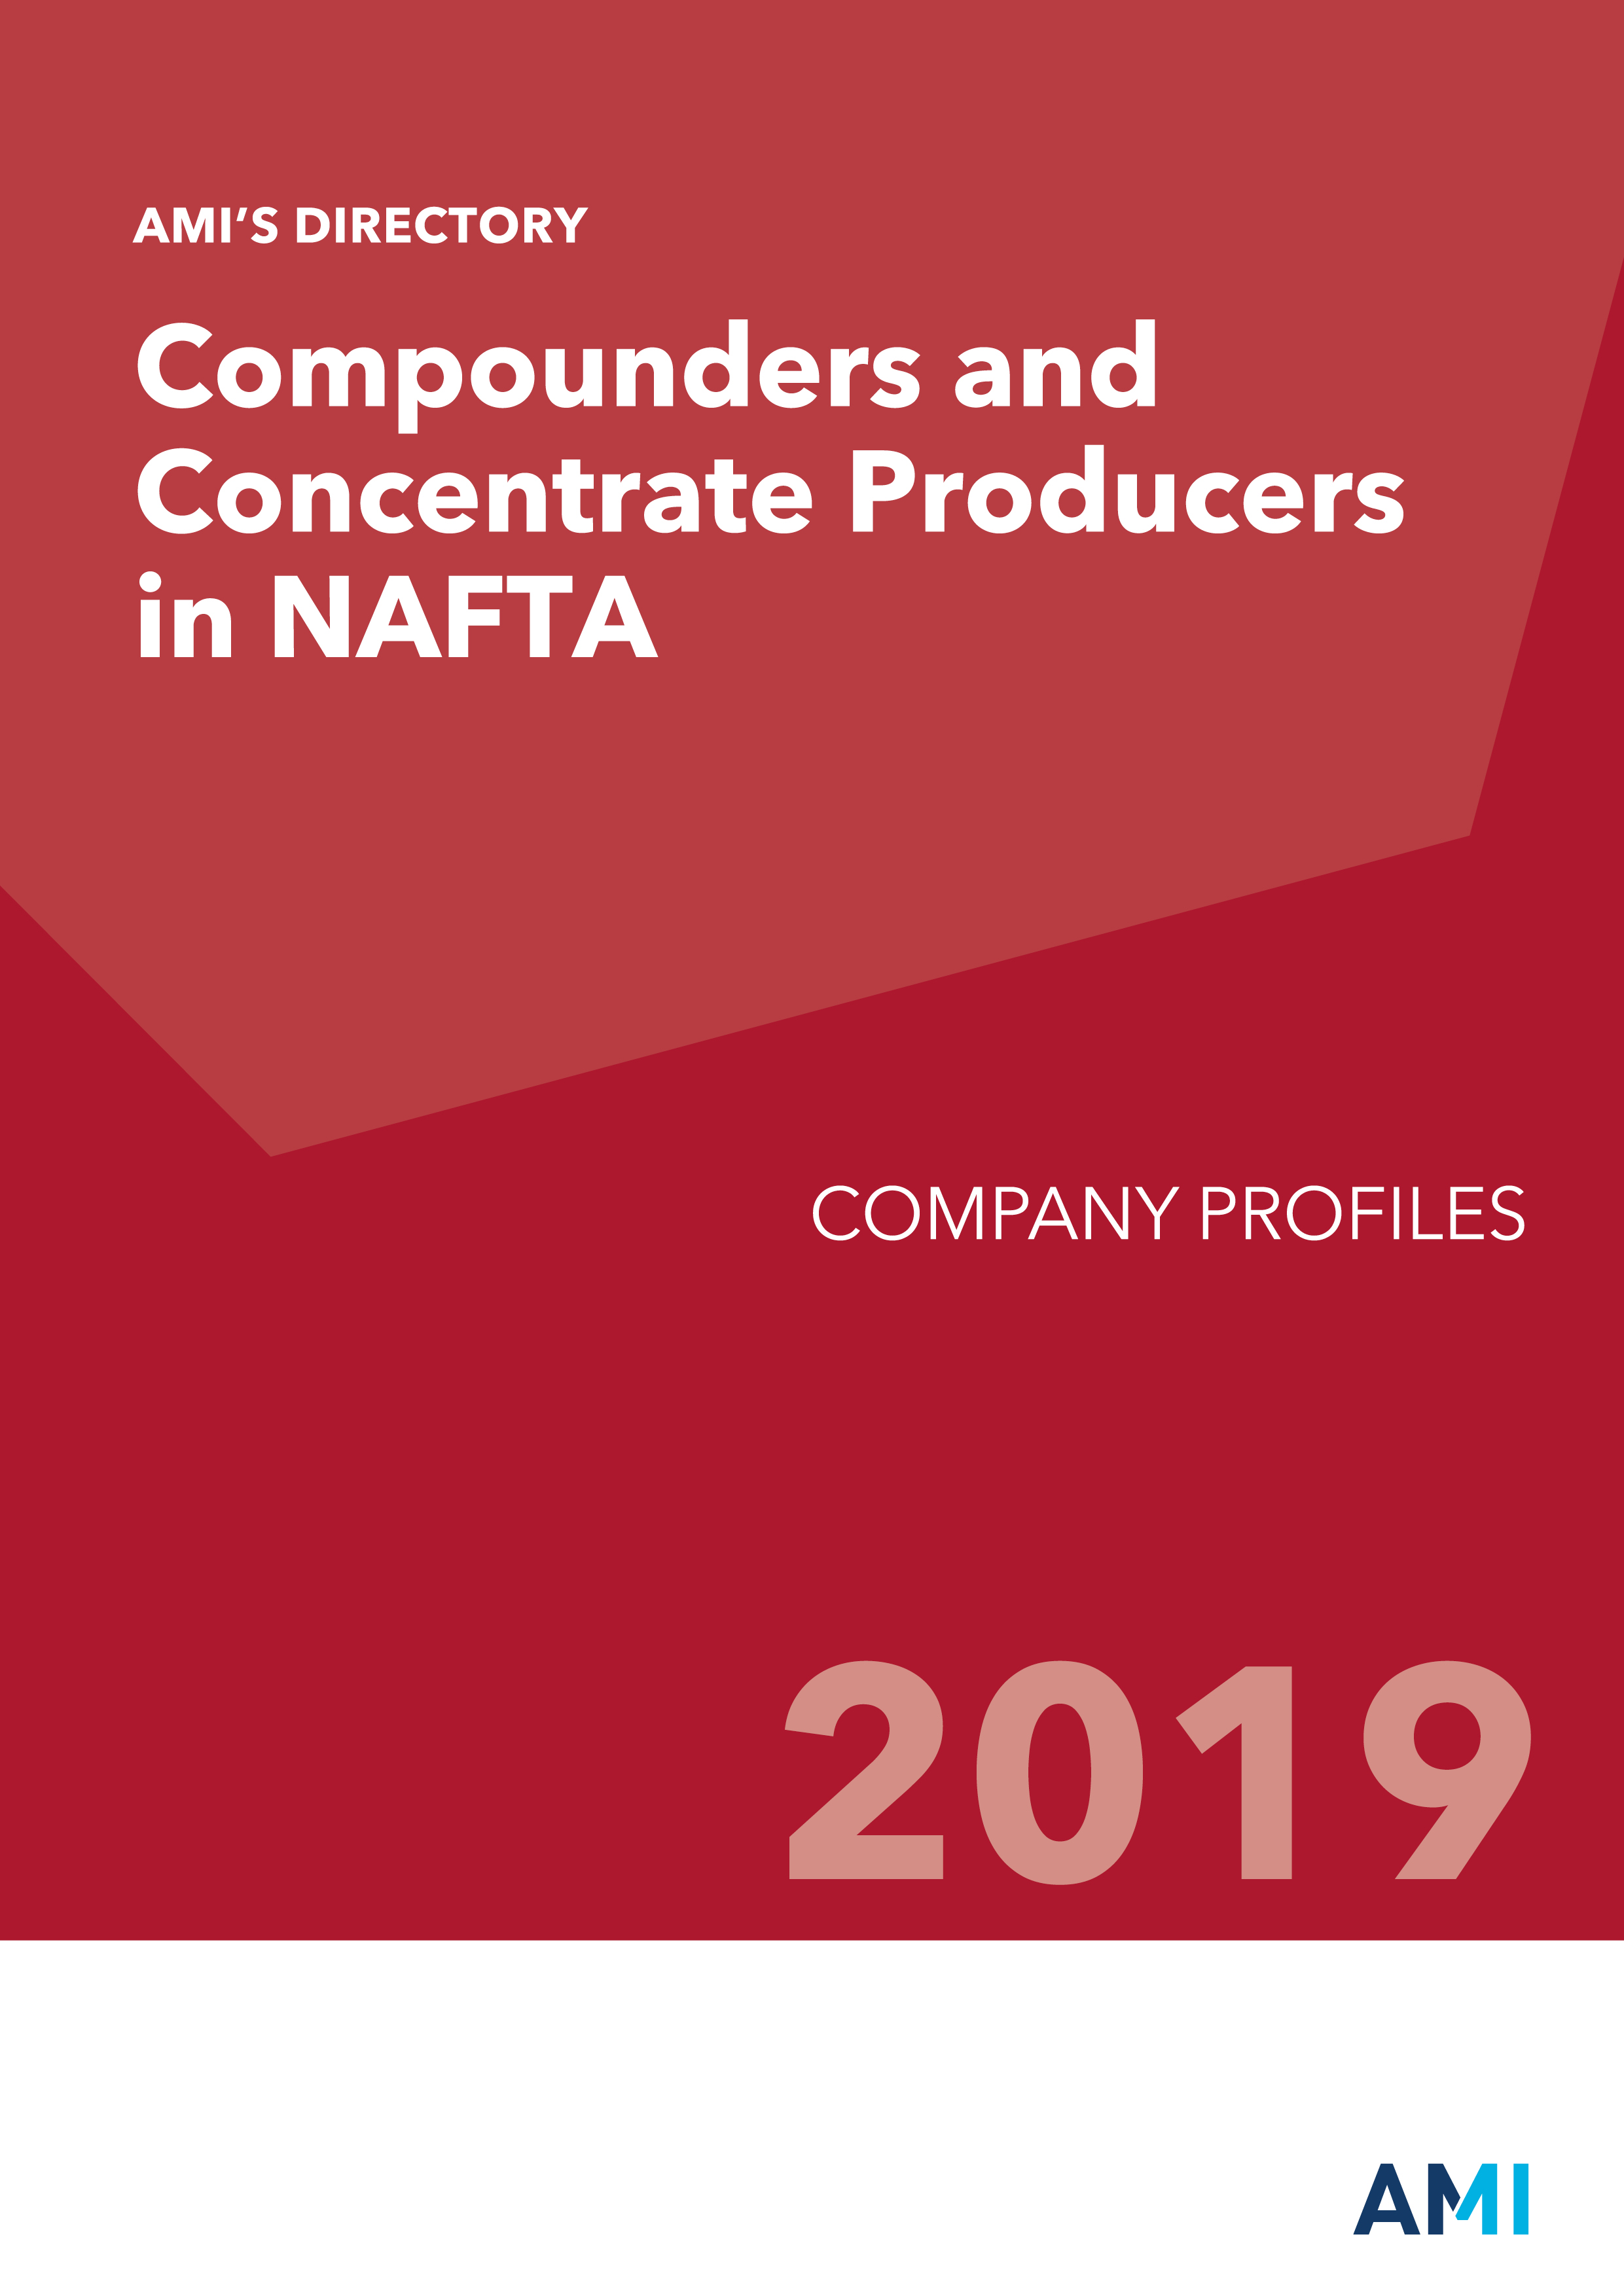 Compounders and Concentrate Producers in North America